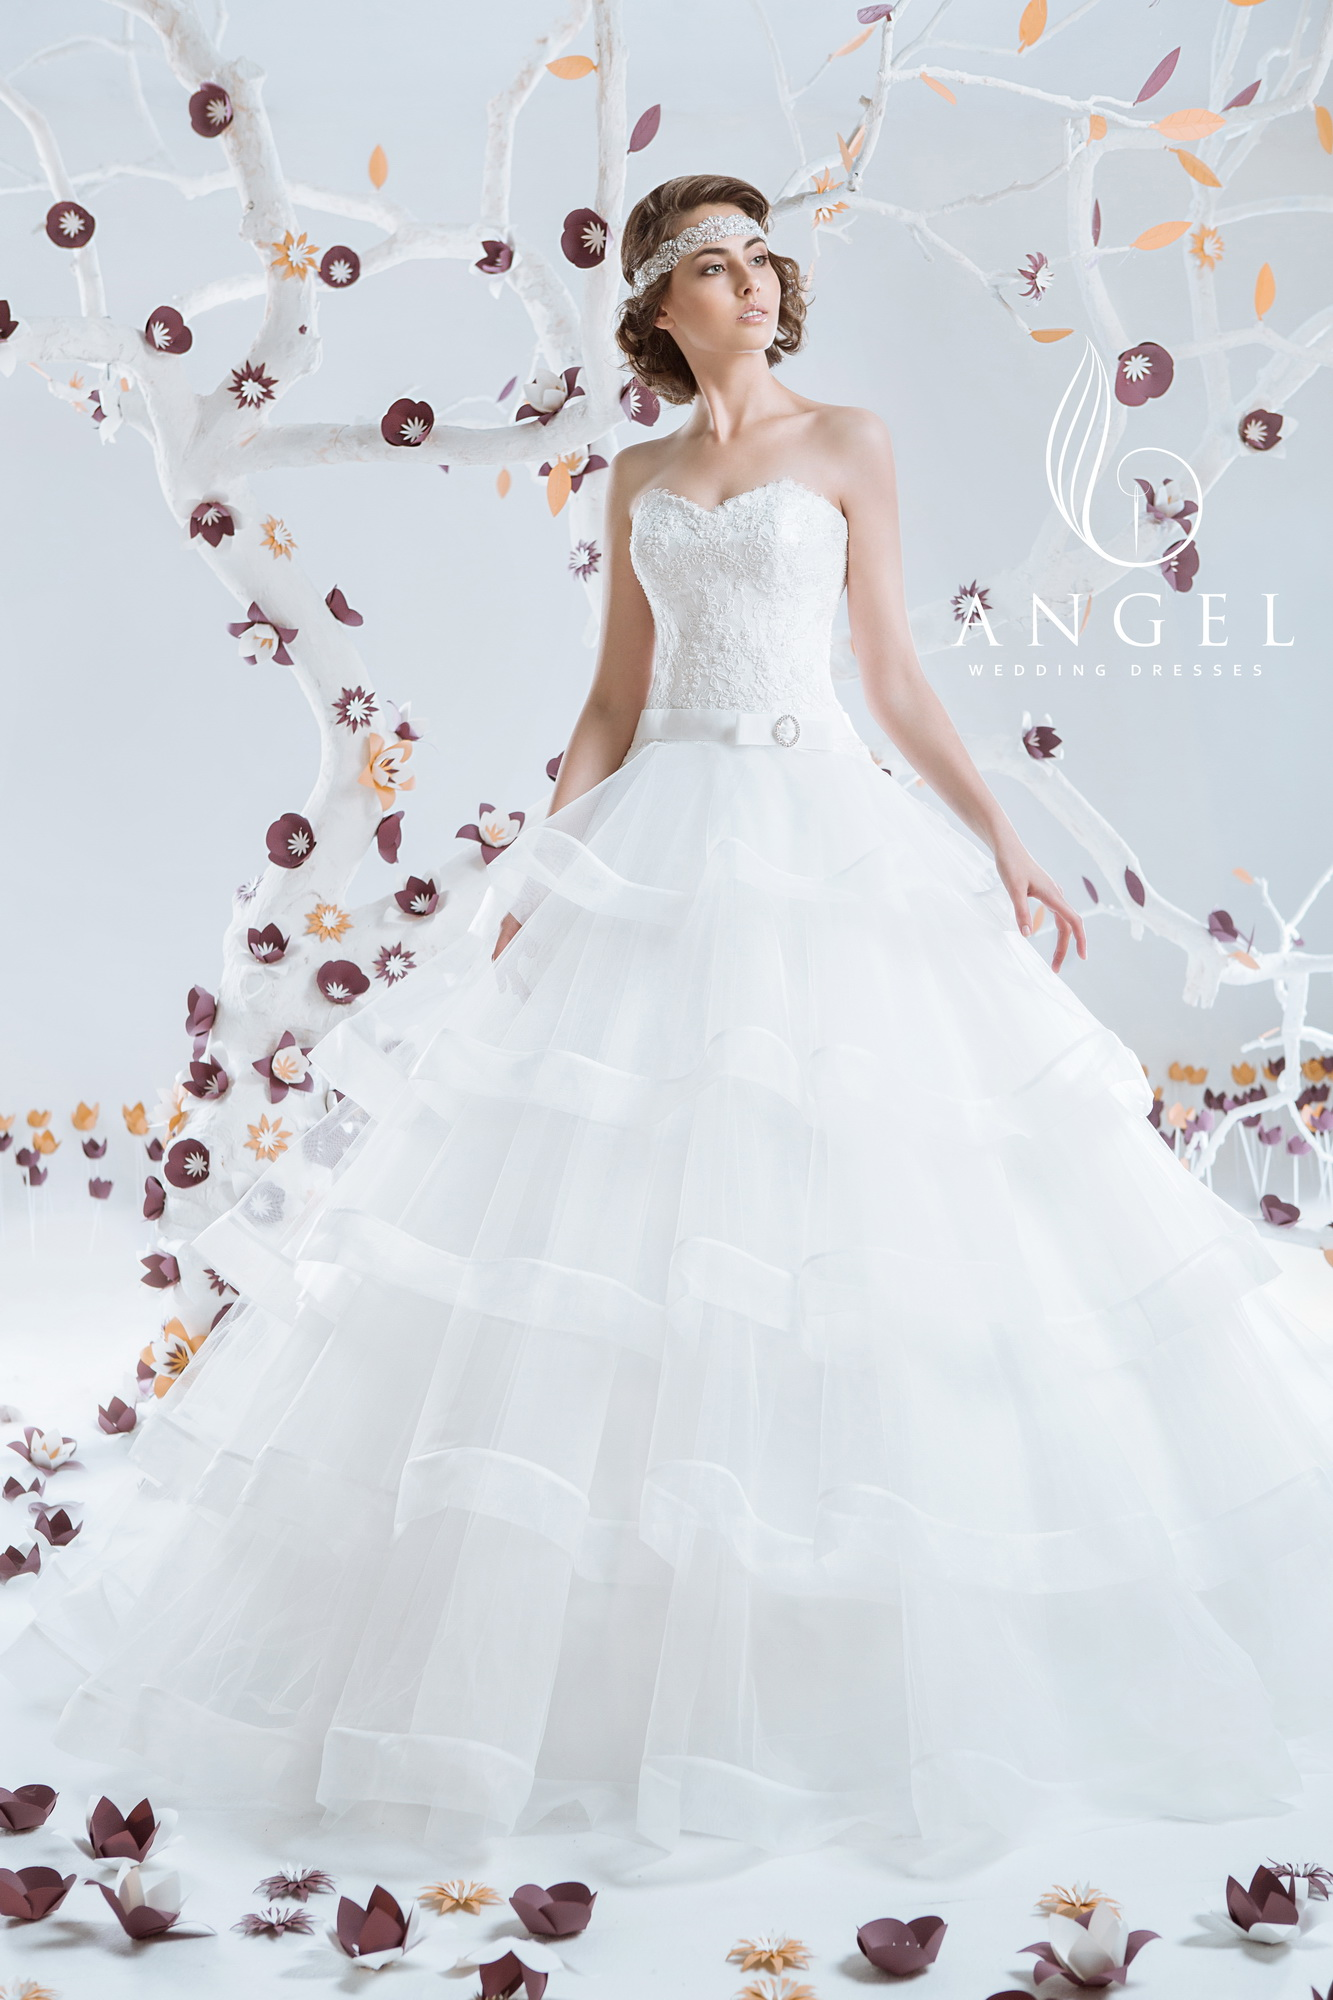 https://angel-novias.com/images/stories/virtuemart/product/Mary Popins 180$.jpg